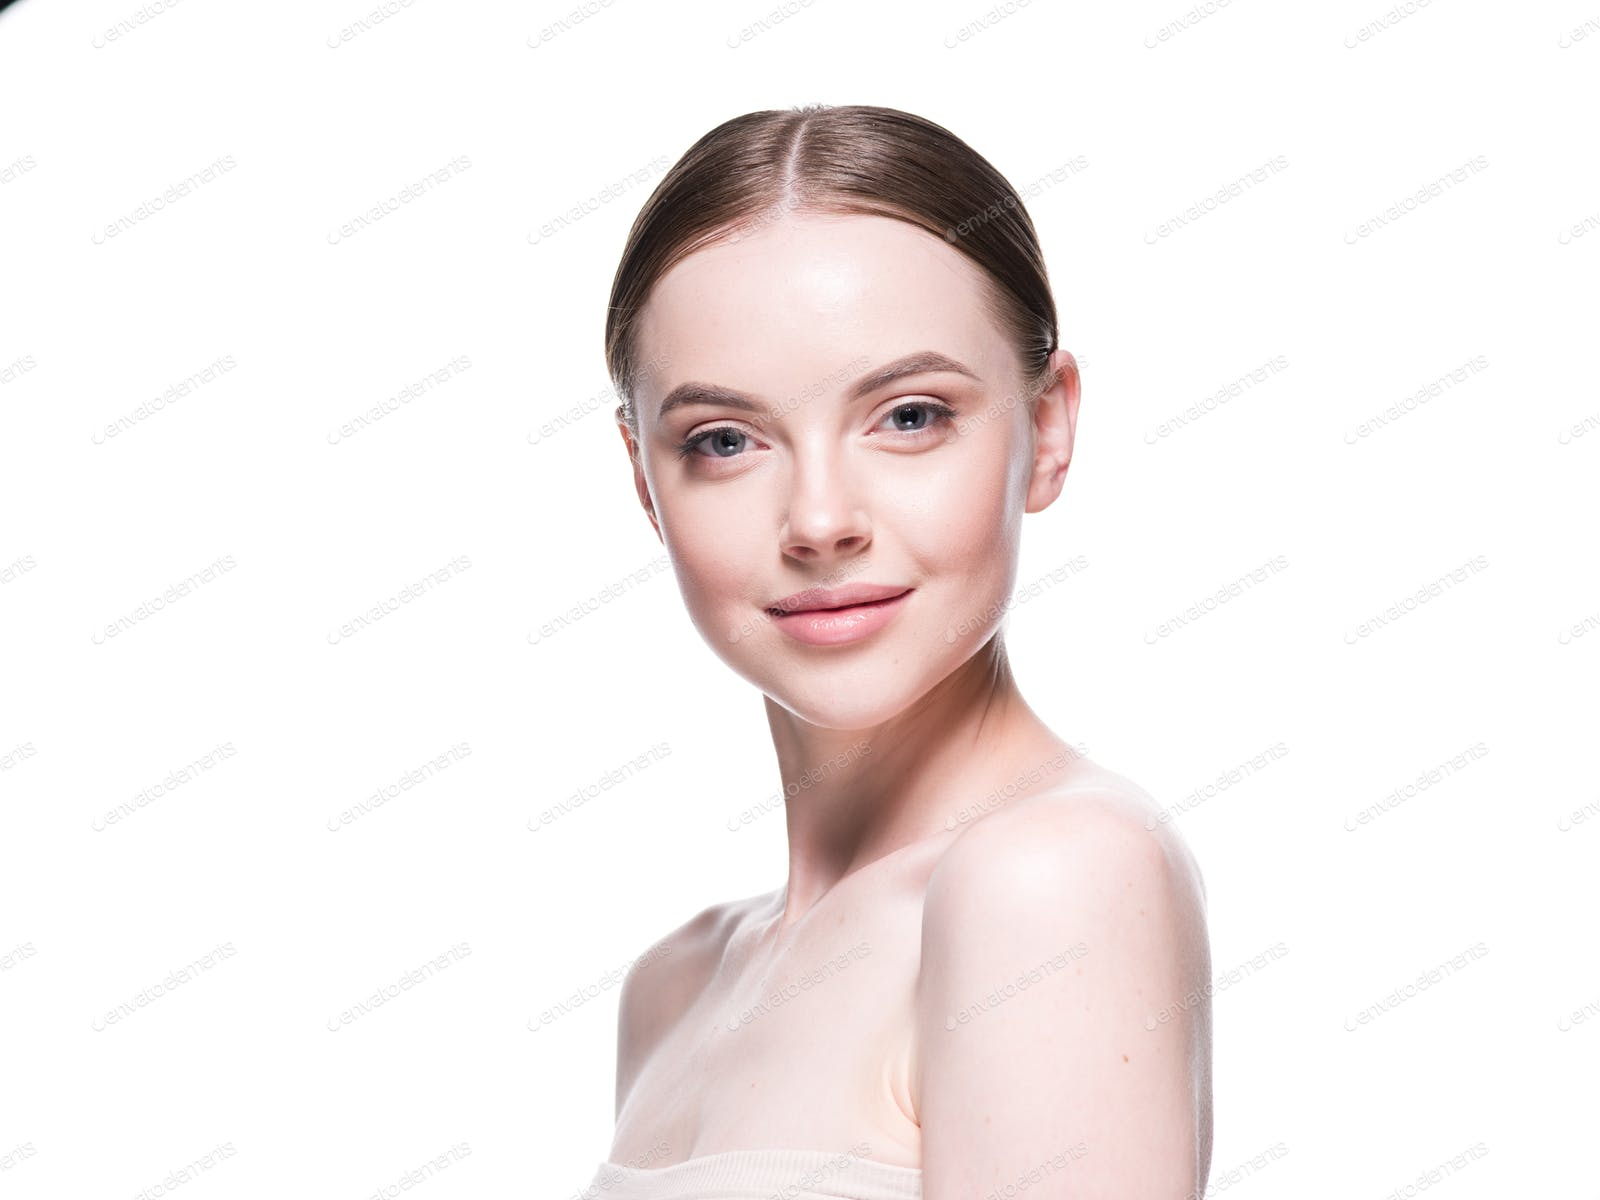 Woman Healthy Skin Beautiful Face Skin Care Photo By Kiraliffe On Envato Elements